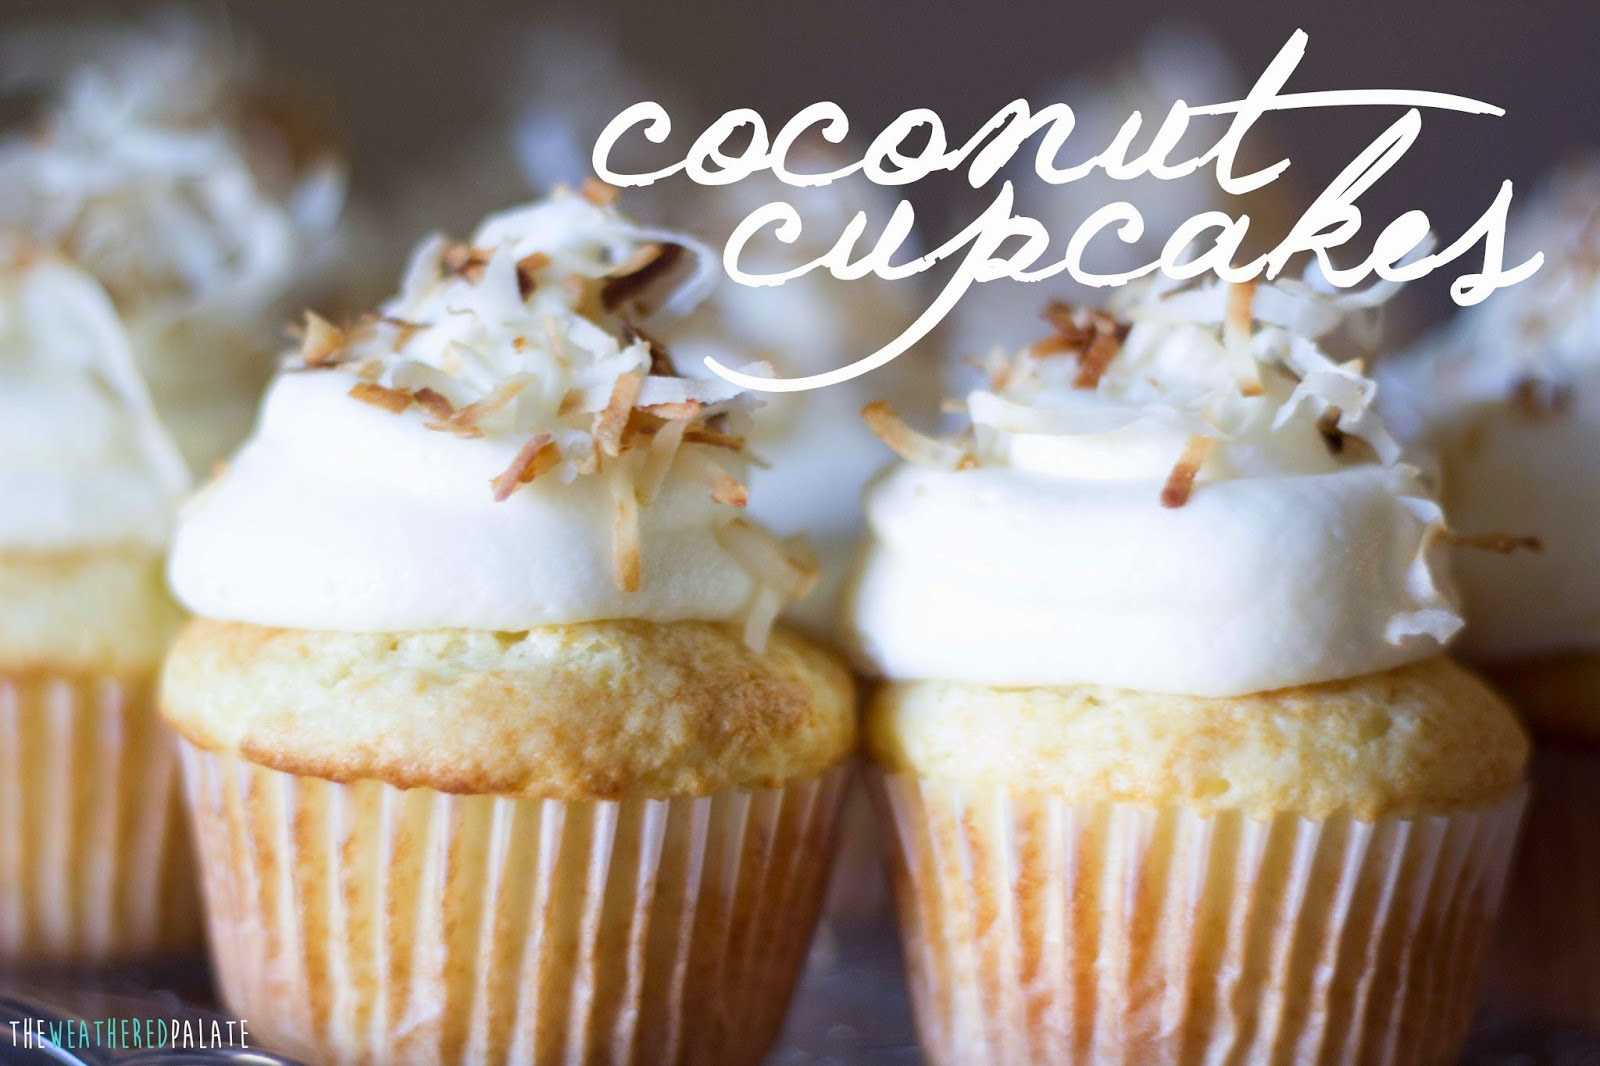 http://www.theweatheredpalate.com/2014/08/coconut-cupcakes.html